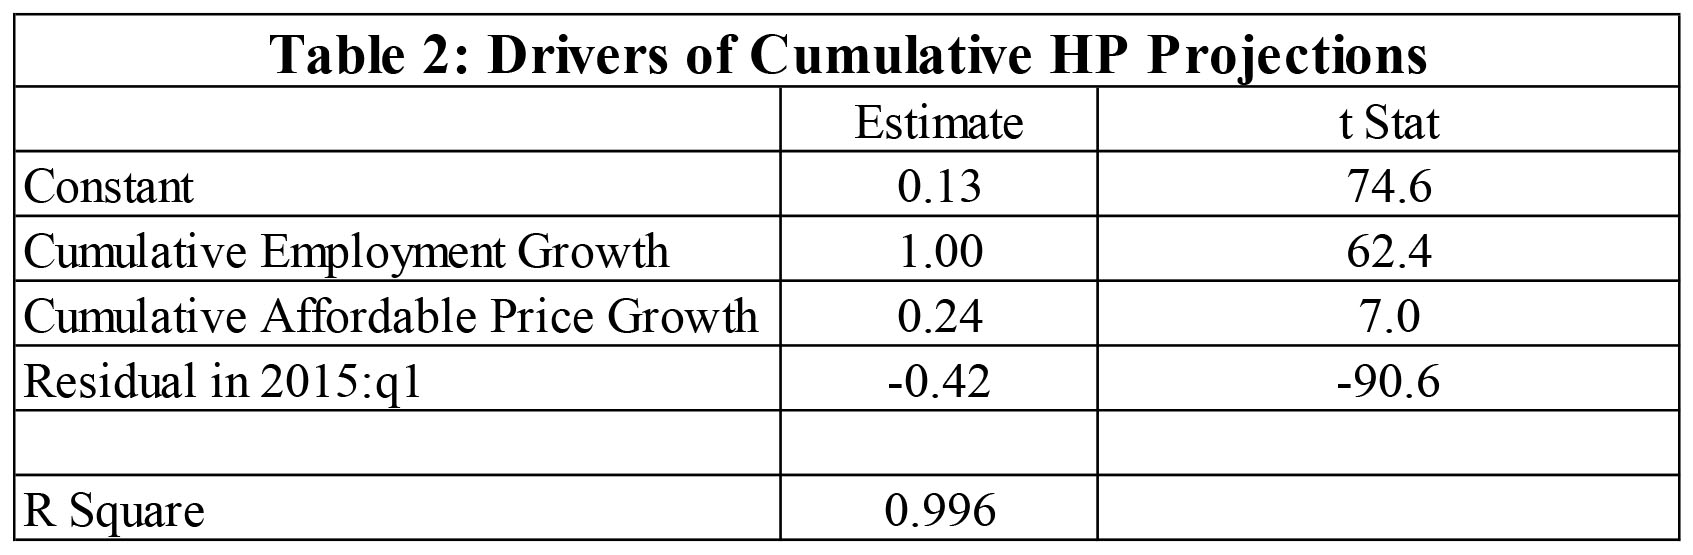 Table 2 - Drivers of Cumulaitive HP Projections